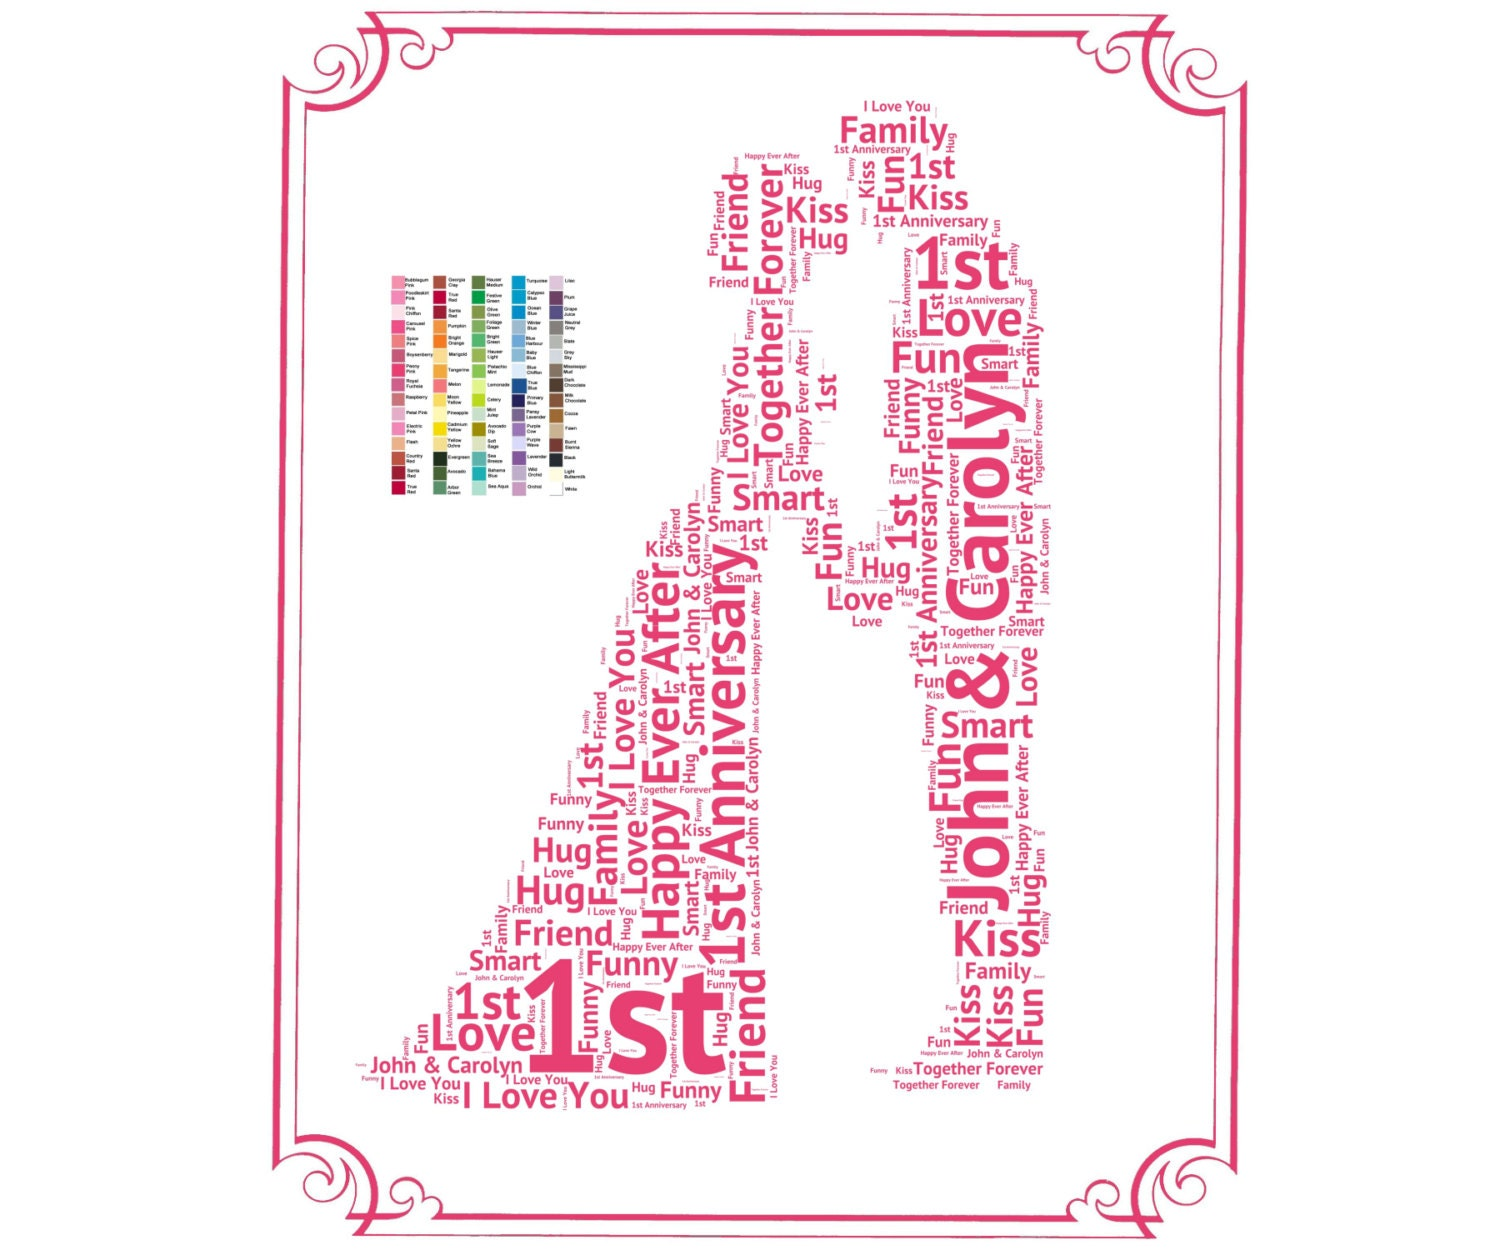 Personalized st anniversary gift ideas